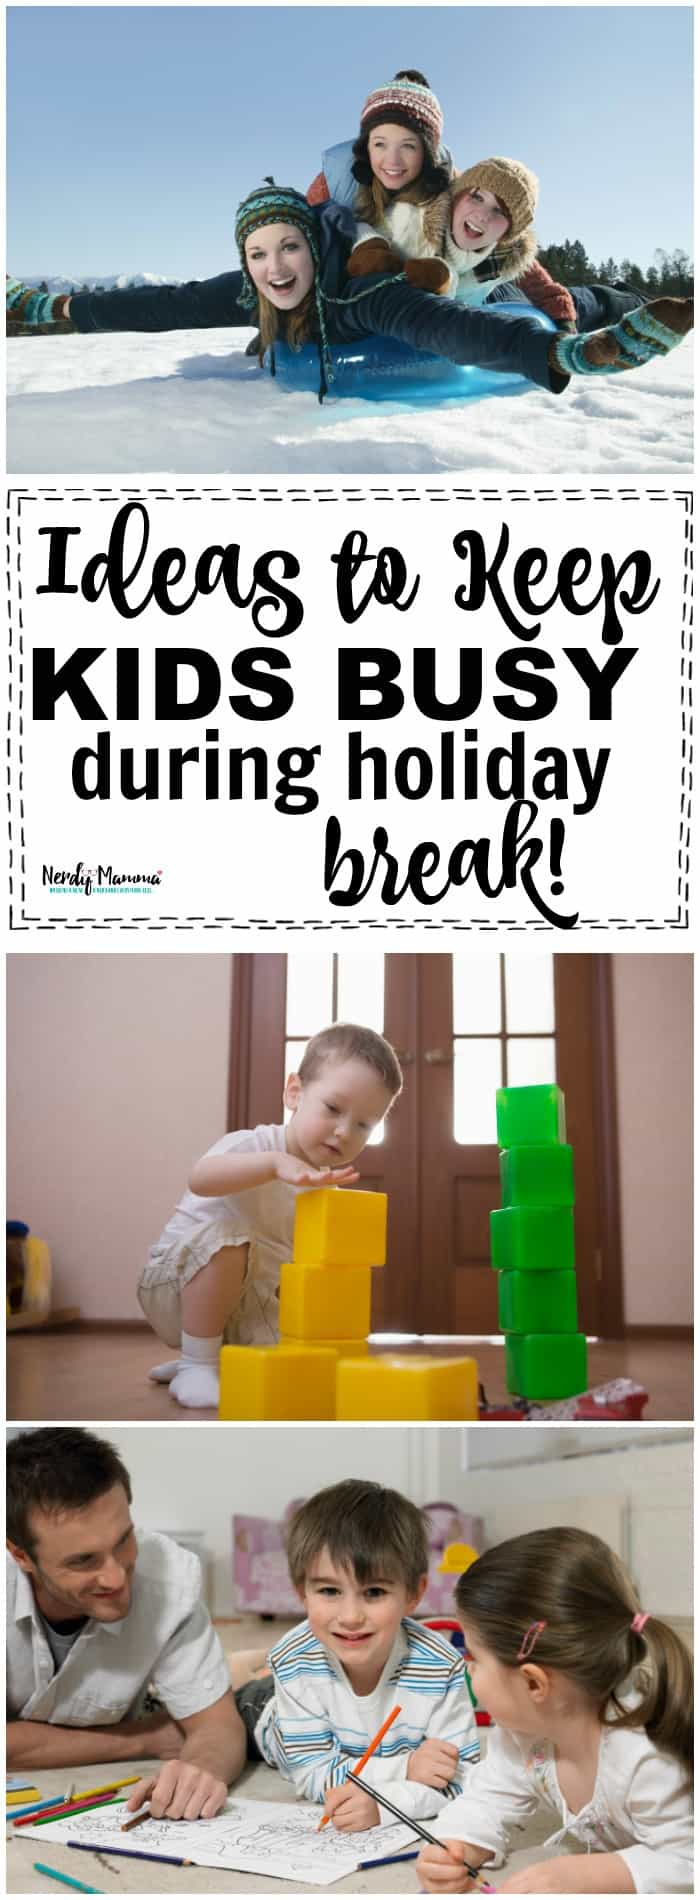 TOTALLY awesome ideas to keep kids busy during holiday breaks!